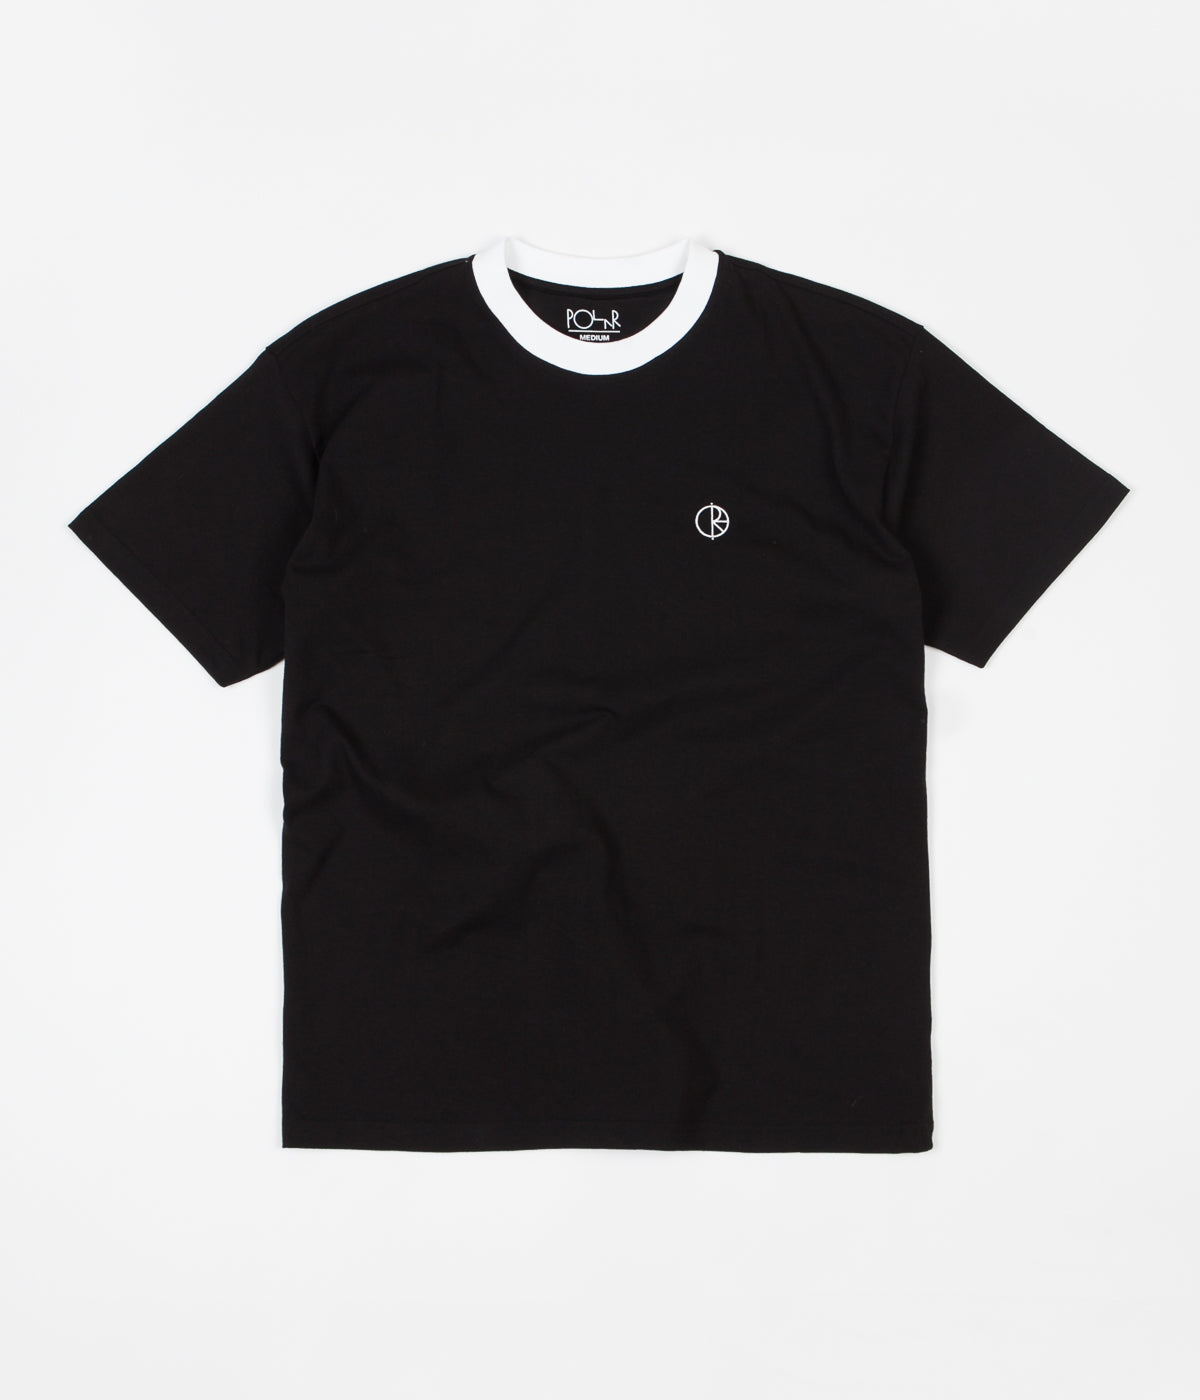 Polar Ringer T-Shirt - Black / White